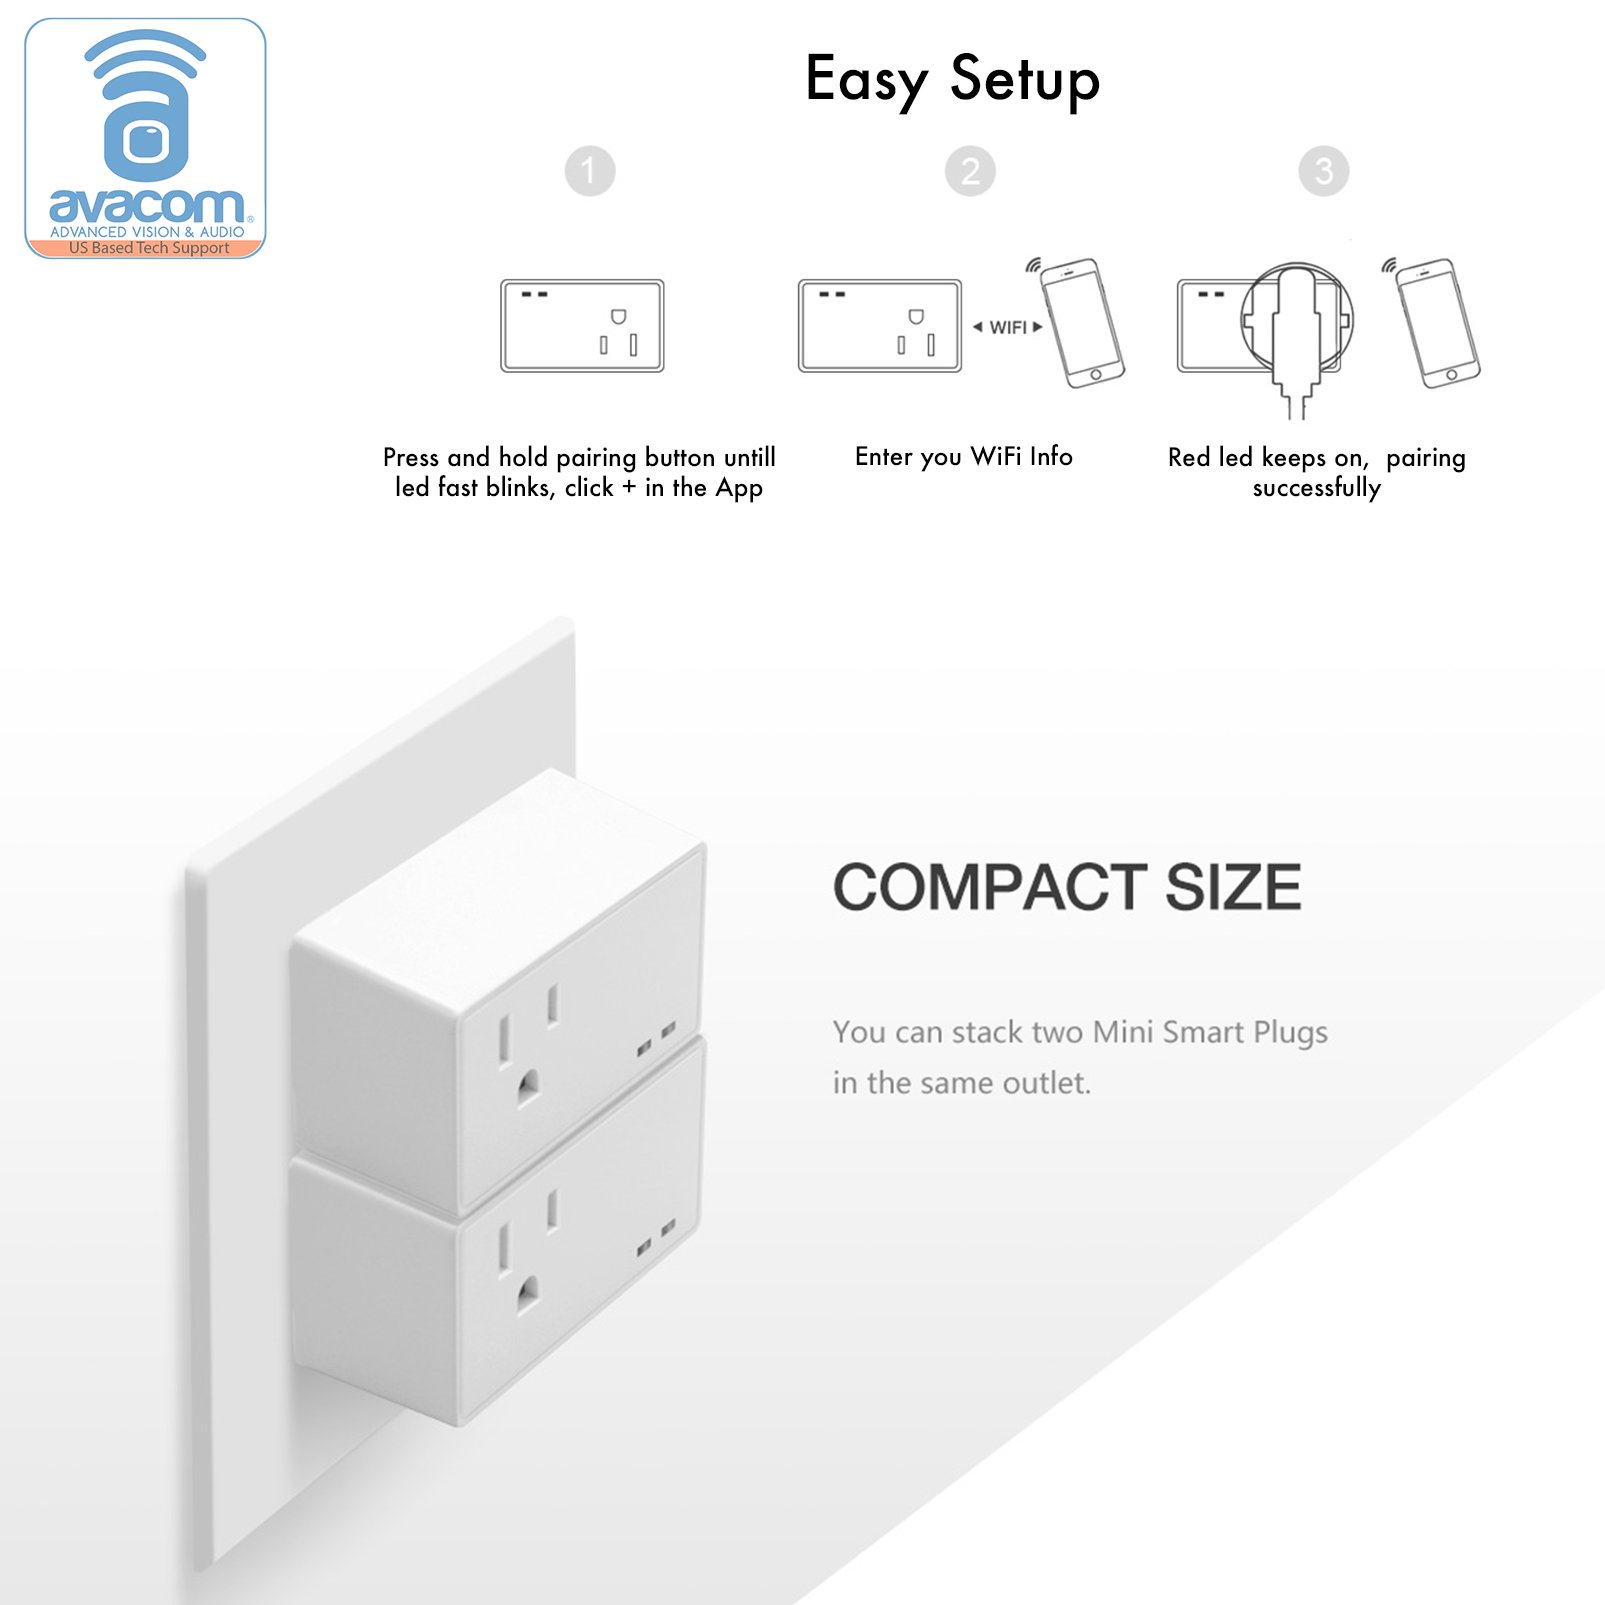 AVACOM WiFi Smart Plug, Compatible with Amazon Alexa Echo/Dot | Google Home | Works with Nest and IFTTT, Remote Voice and App Control from Anywhere, Wifi Remote Outlet, No Hub Required by Avacom (Image #6)